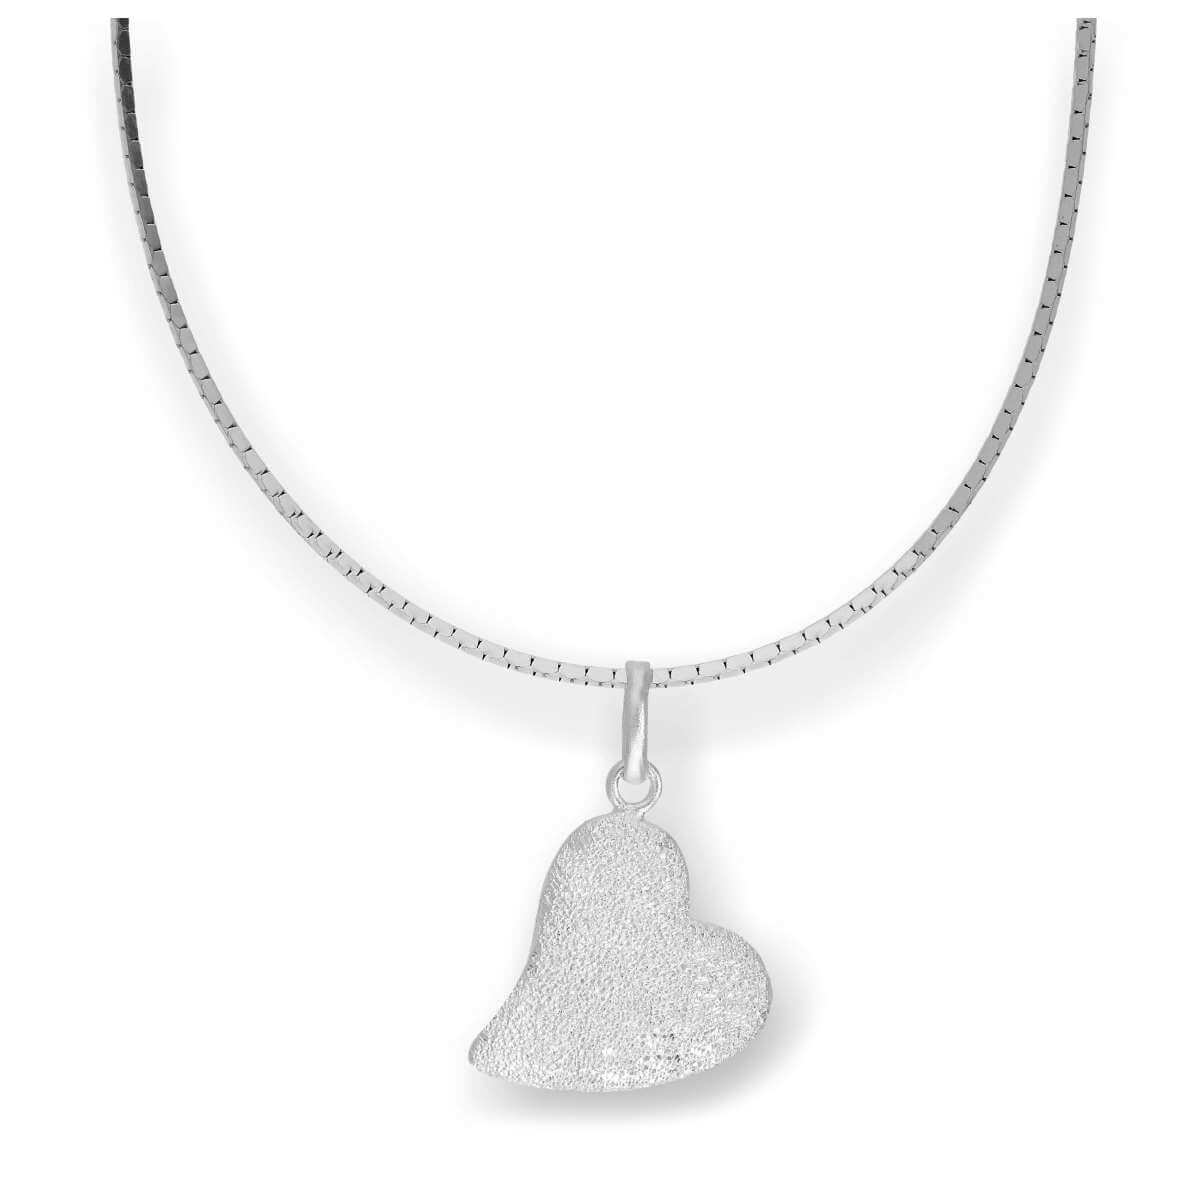 Sterling Silver Frosted Heart Pendant Necklace 16 - 22 Inches